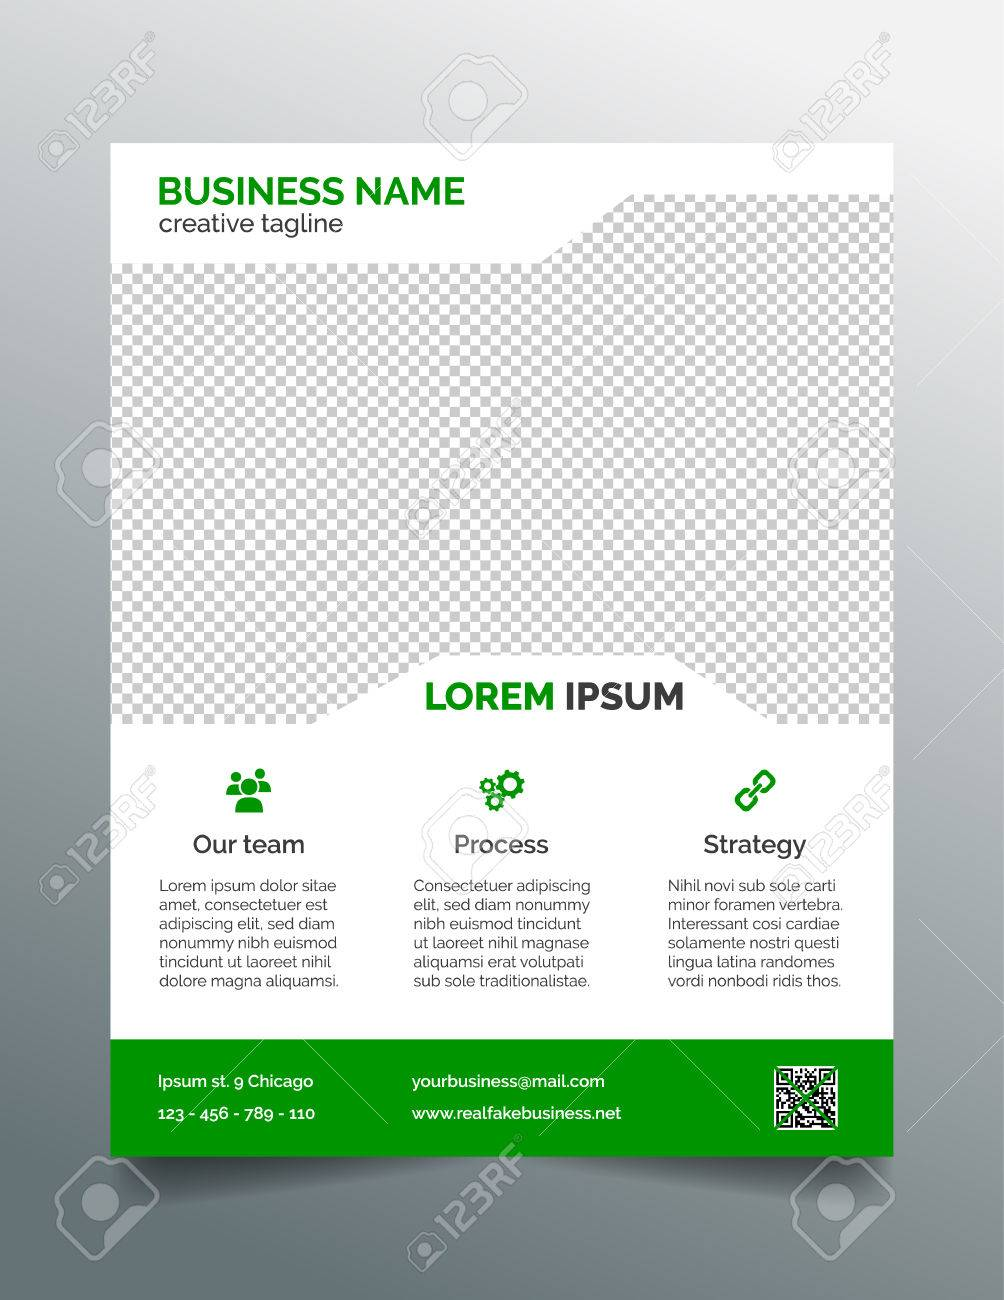 business flyer template simple green design royalty business flyer template simple green design stock vector 38982746